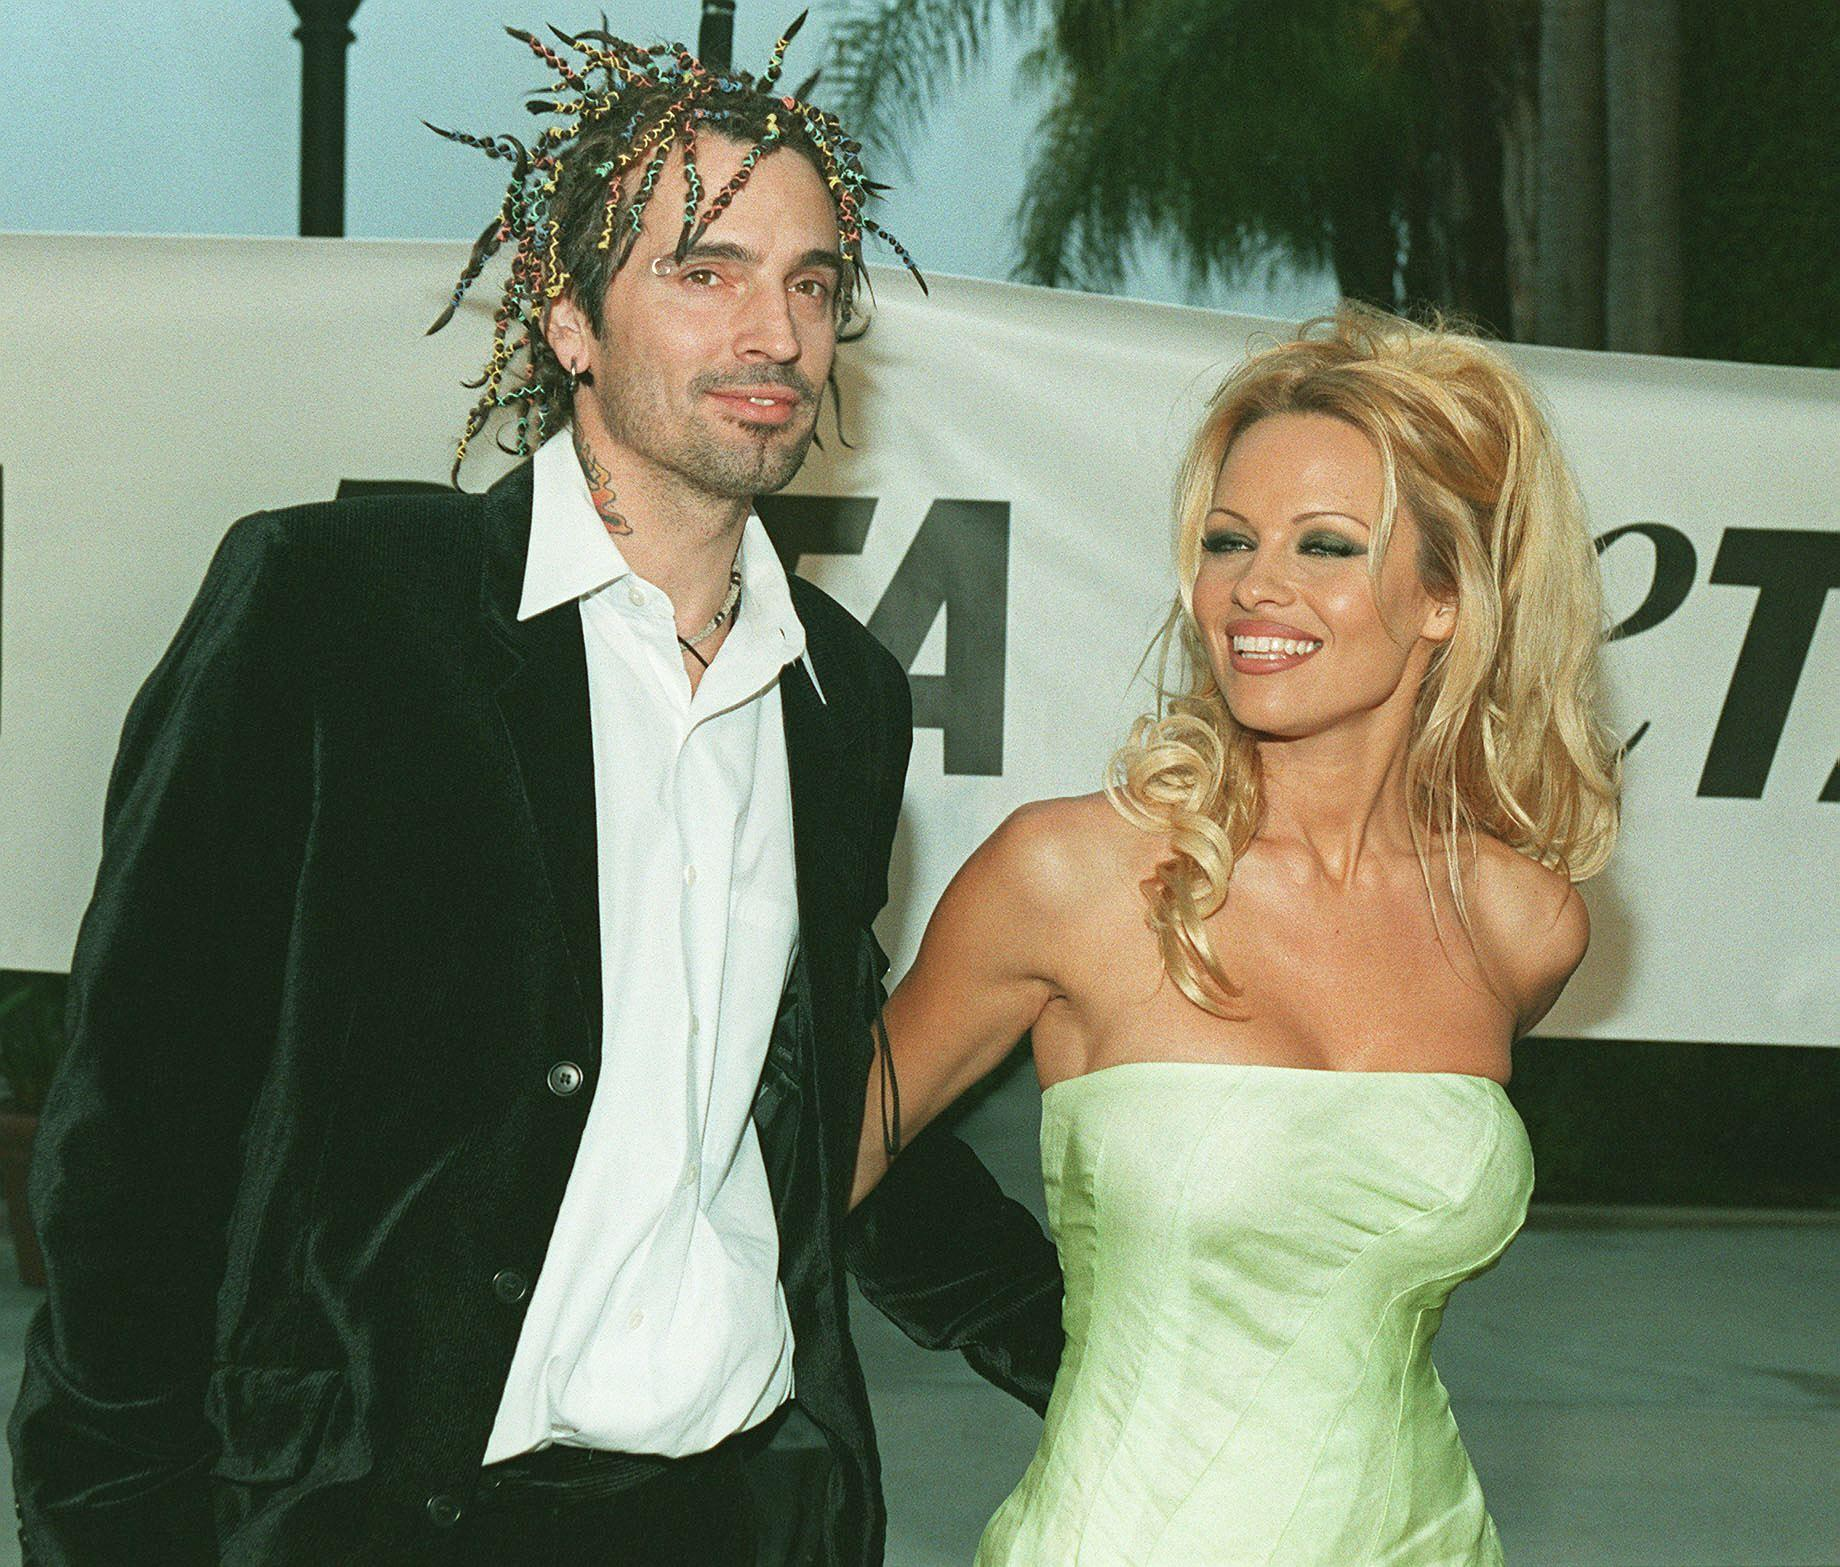 pamela-anderson-tommy-lee-engagement-1531337760307-1531337762214.jpg